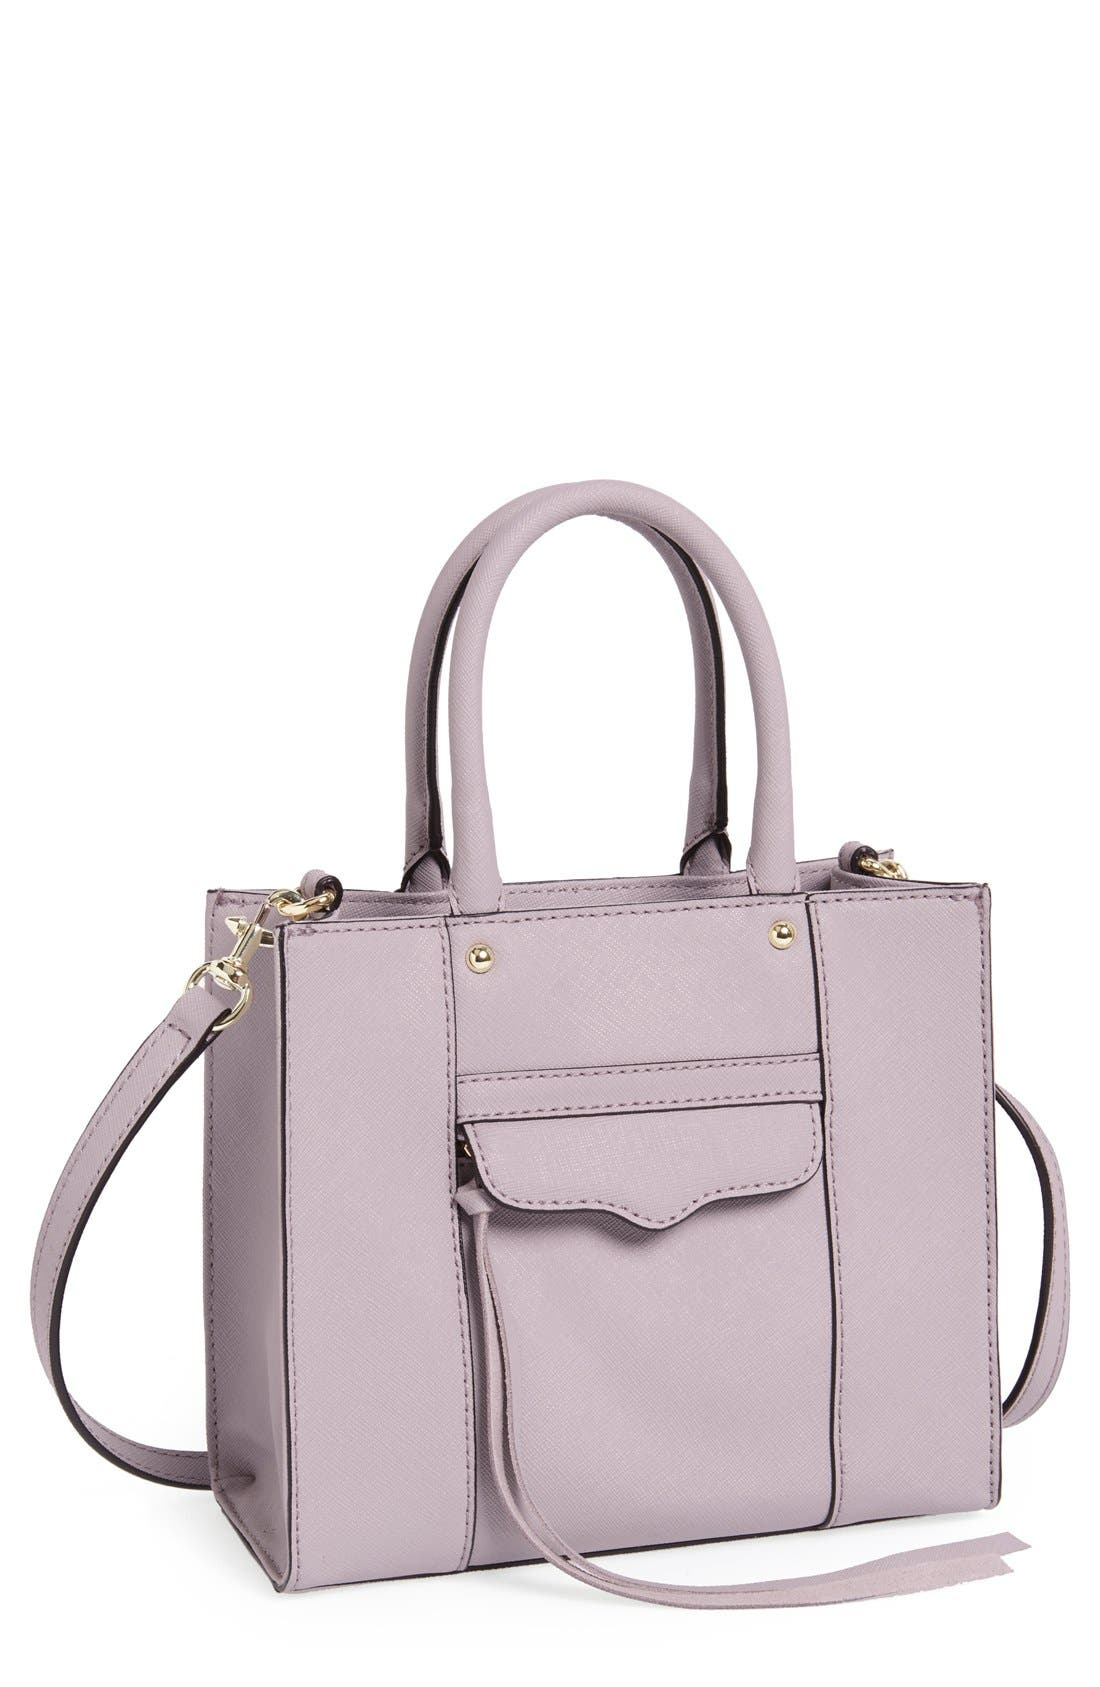 'Mini MAB Tote' Crossbody Bag,                             Main thumbnail 15, color,